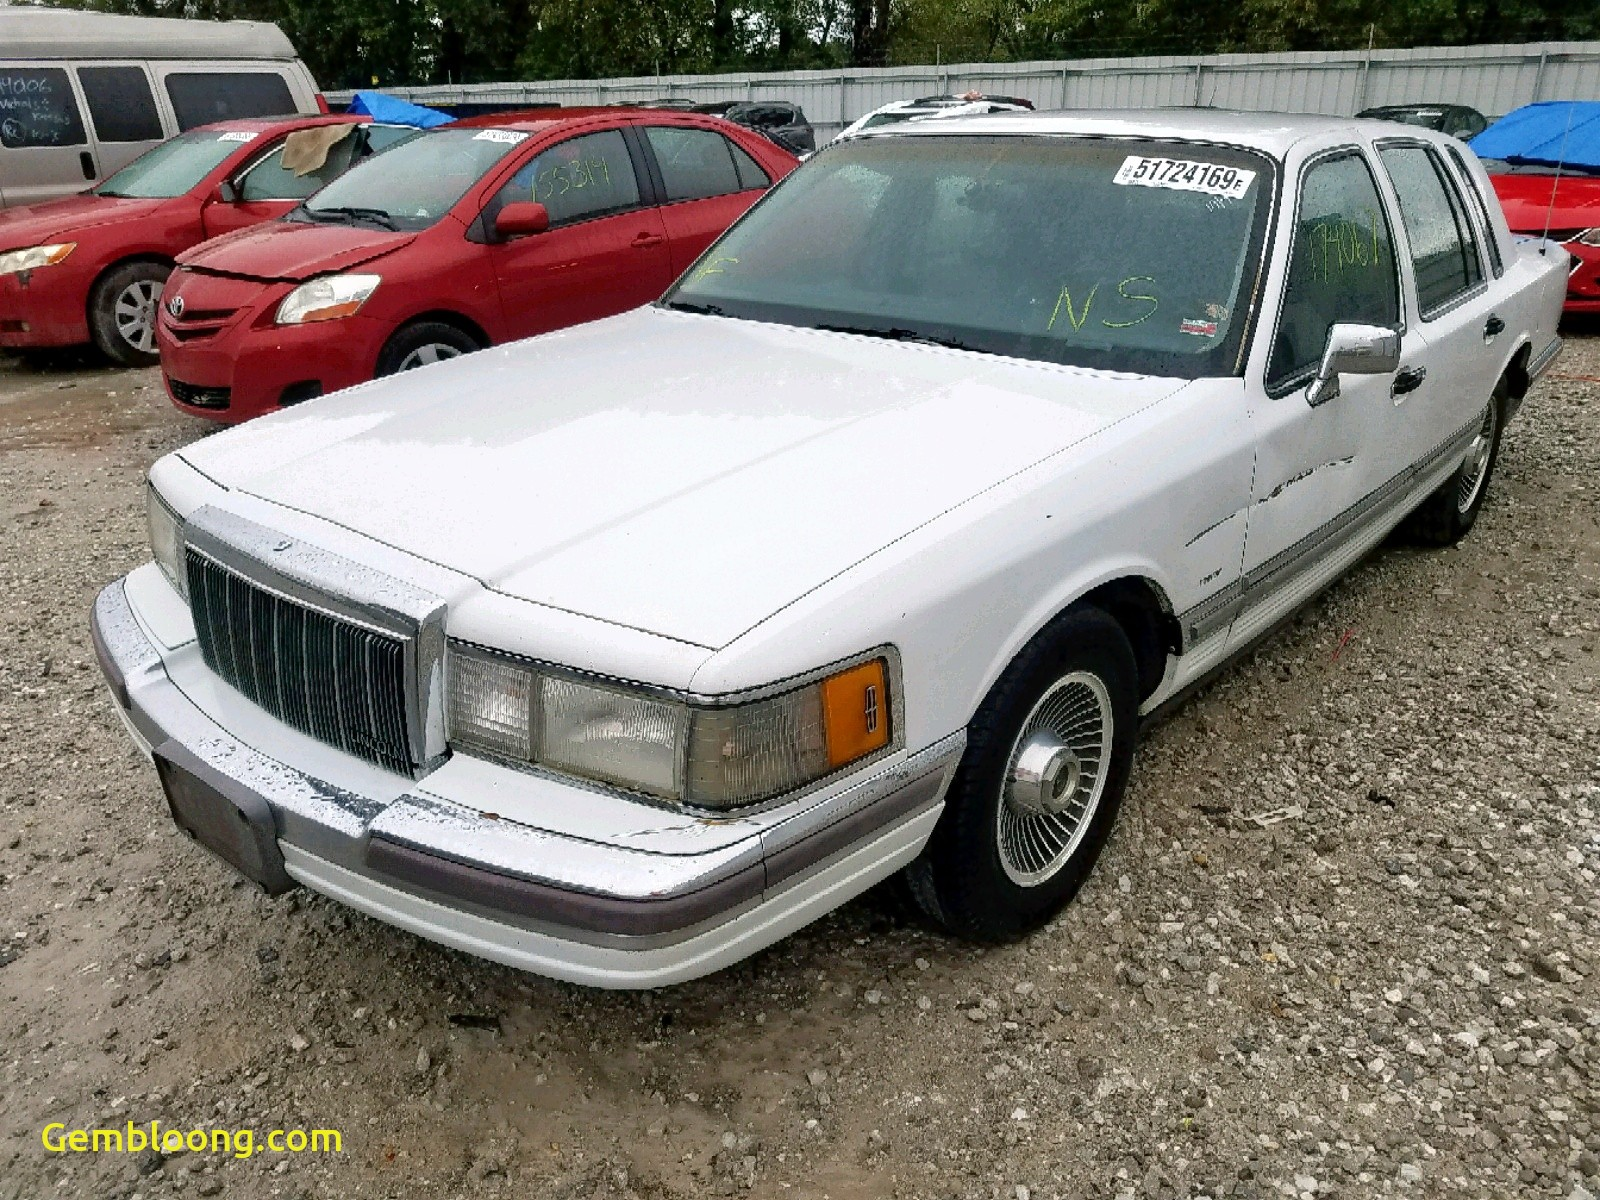 Used Lincoln town Cars for Sale Near Me Beautiful Lincoln town Car 1990 1lnlm81fxly